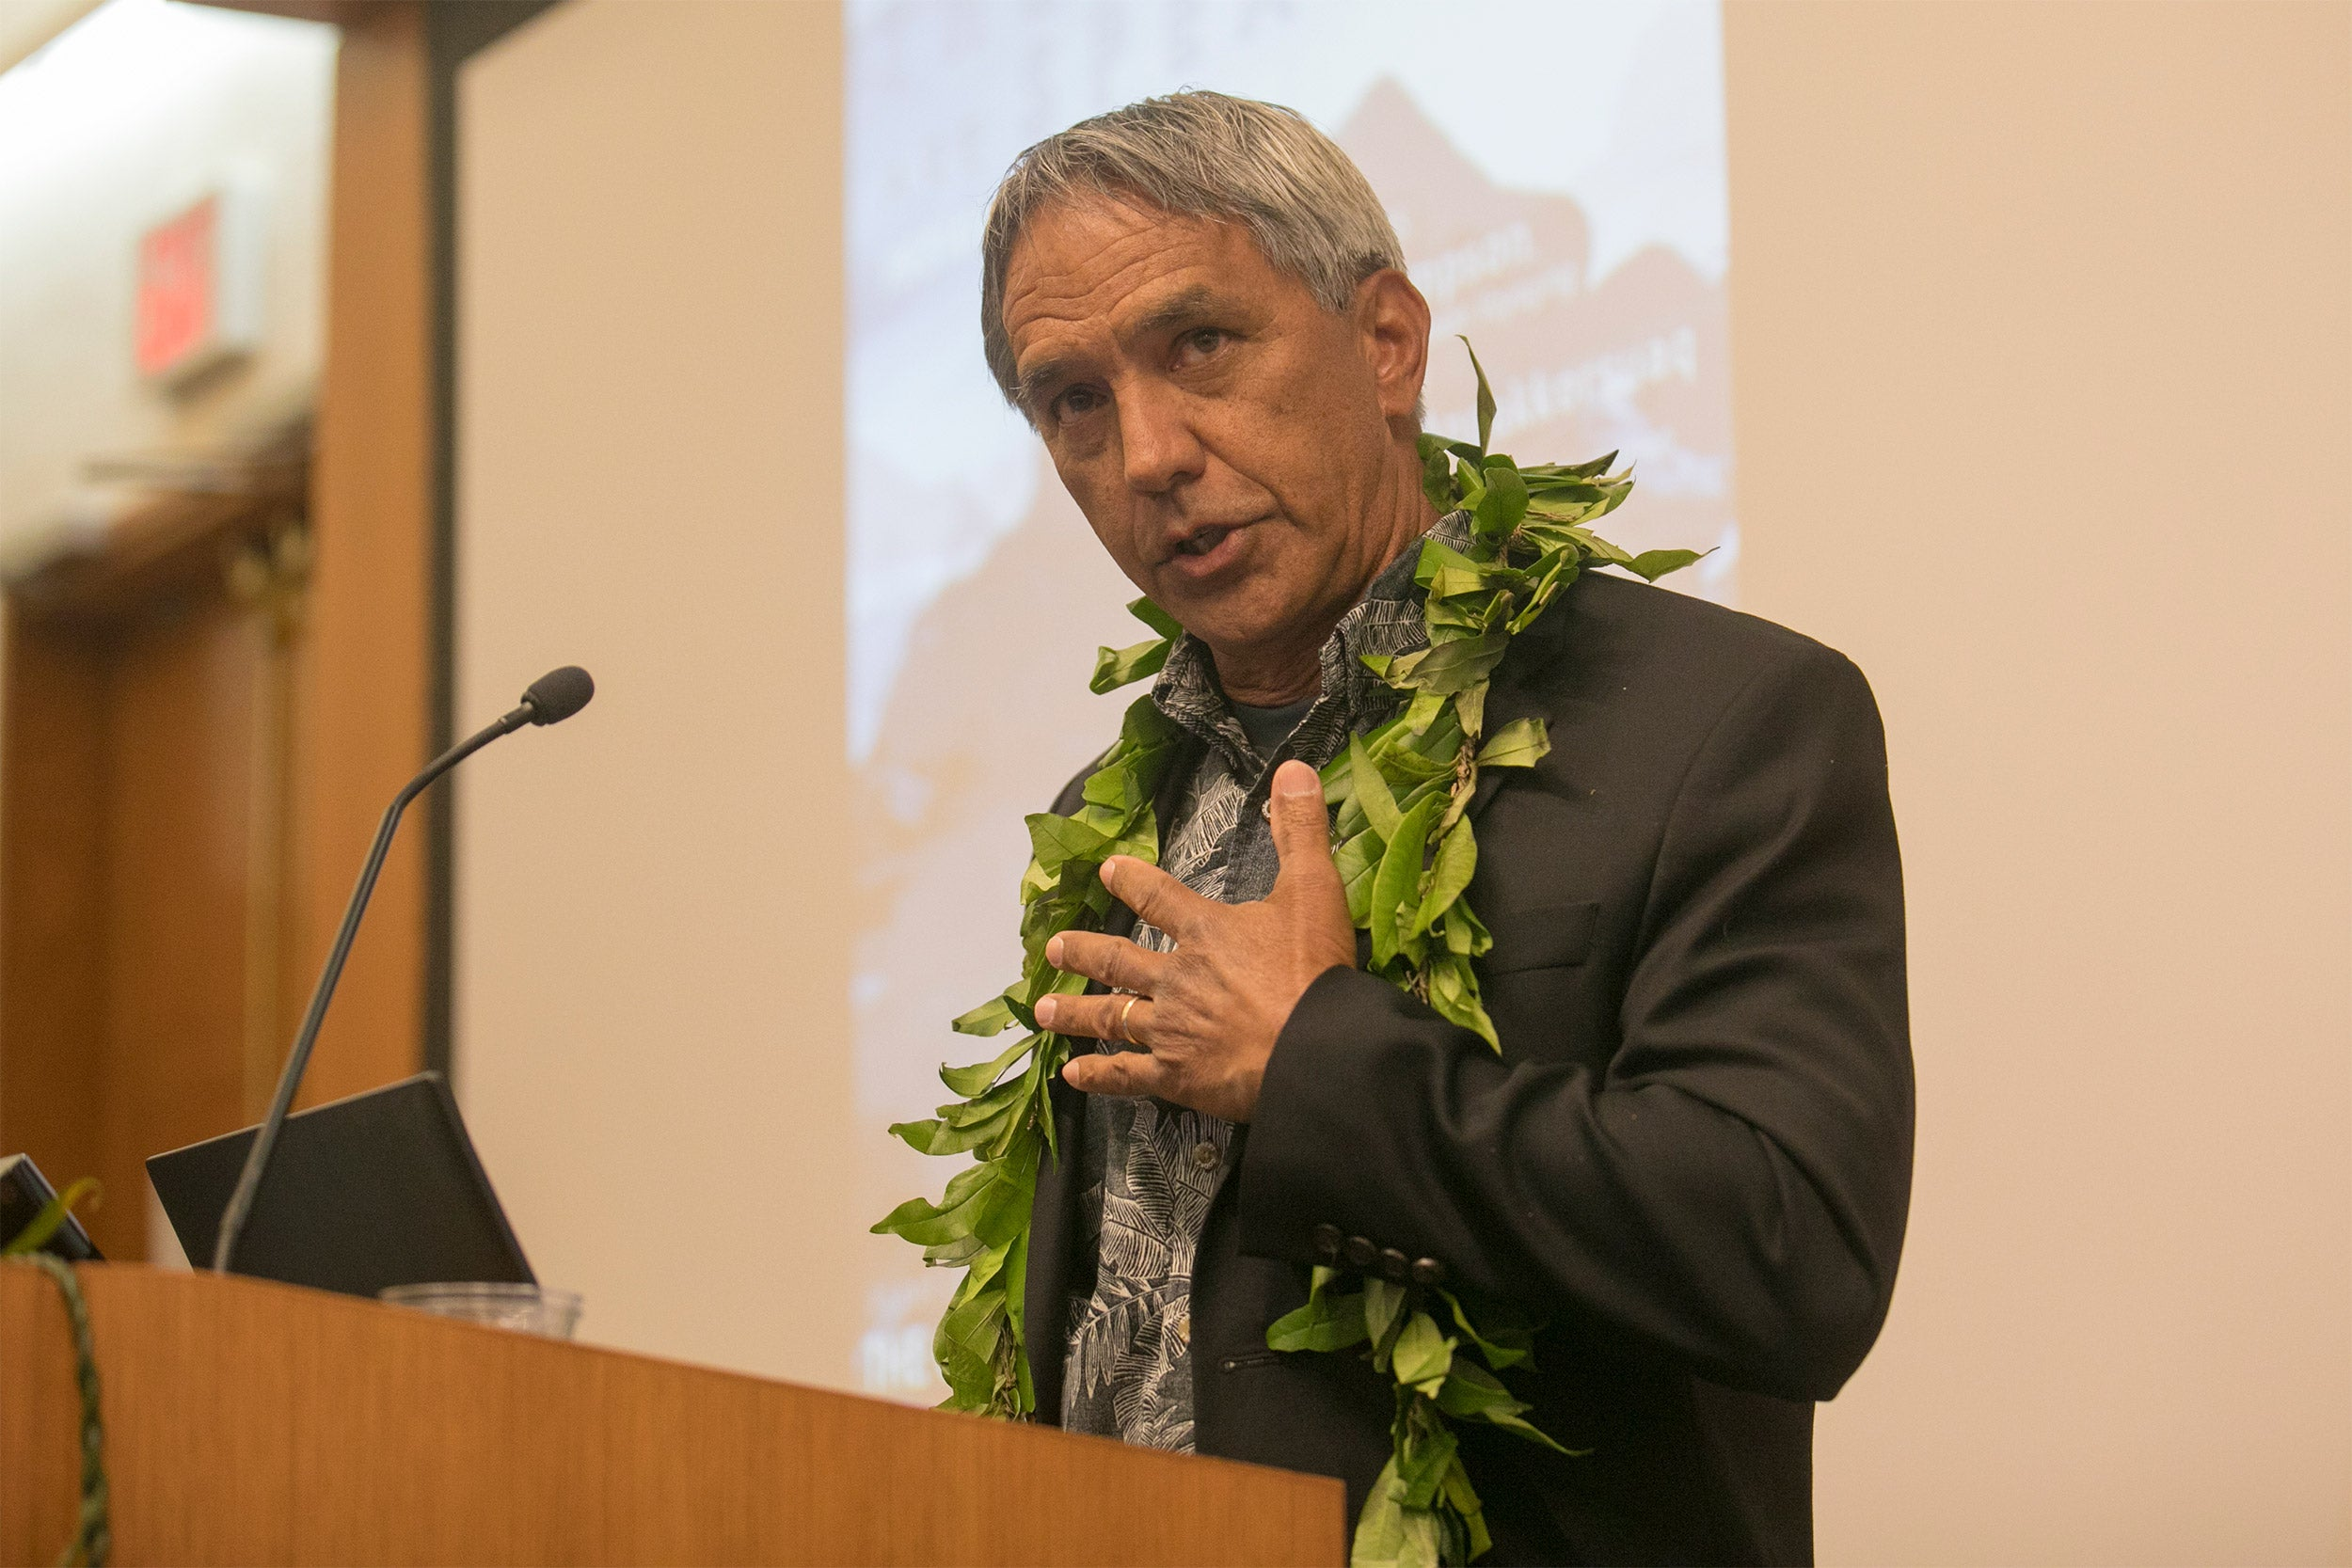 Nainoa Thompson at the podium